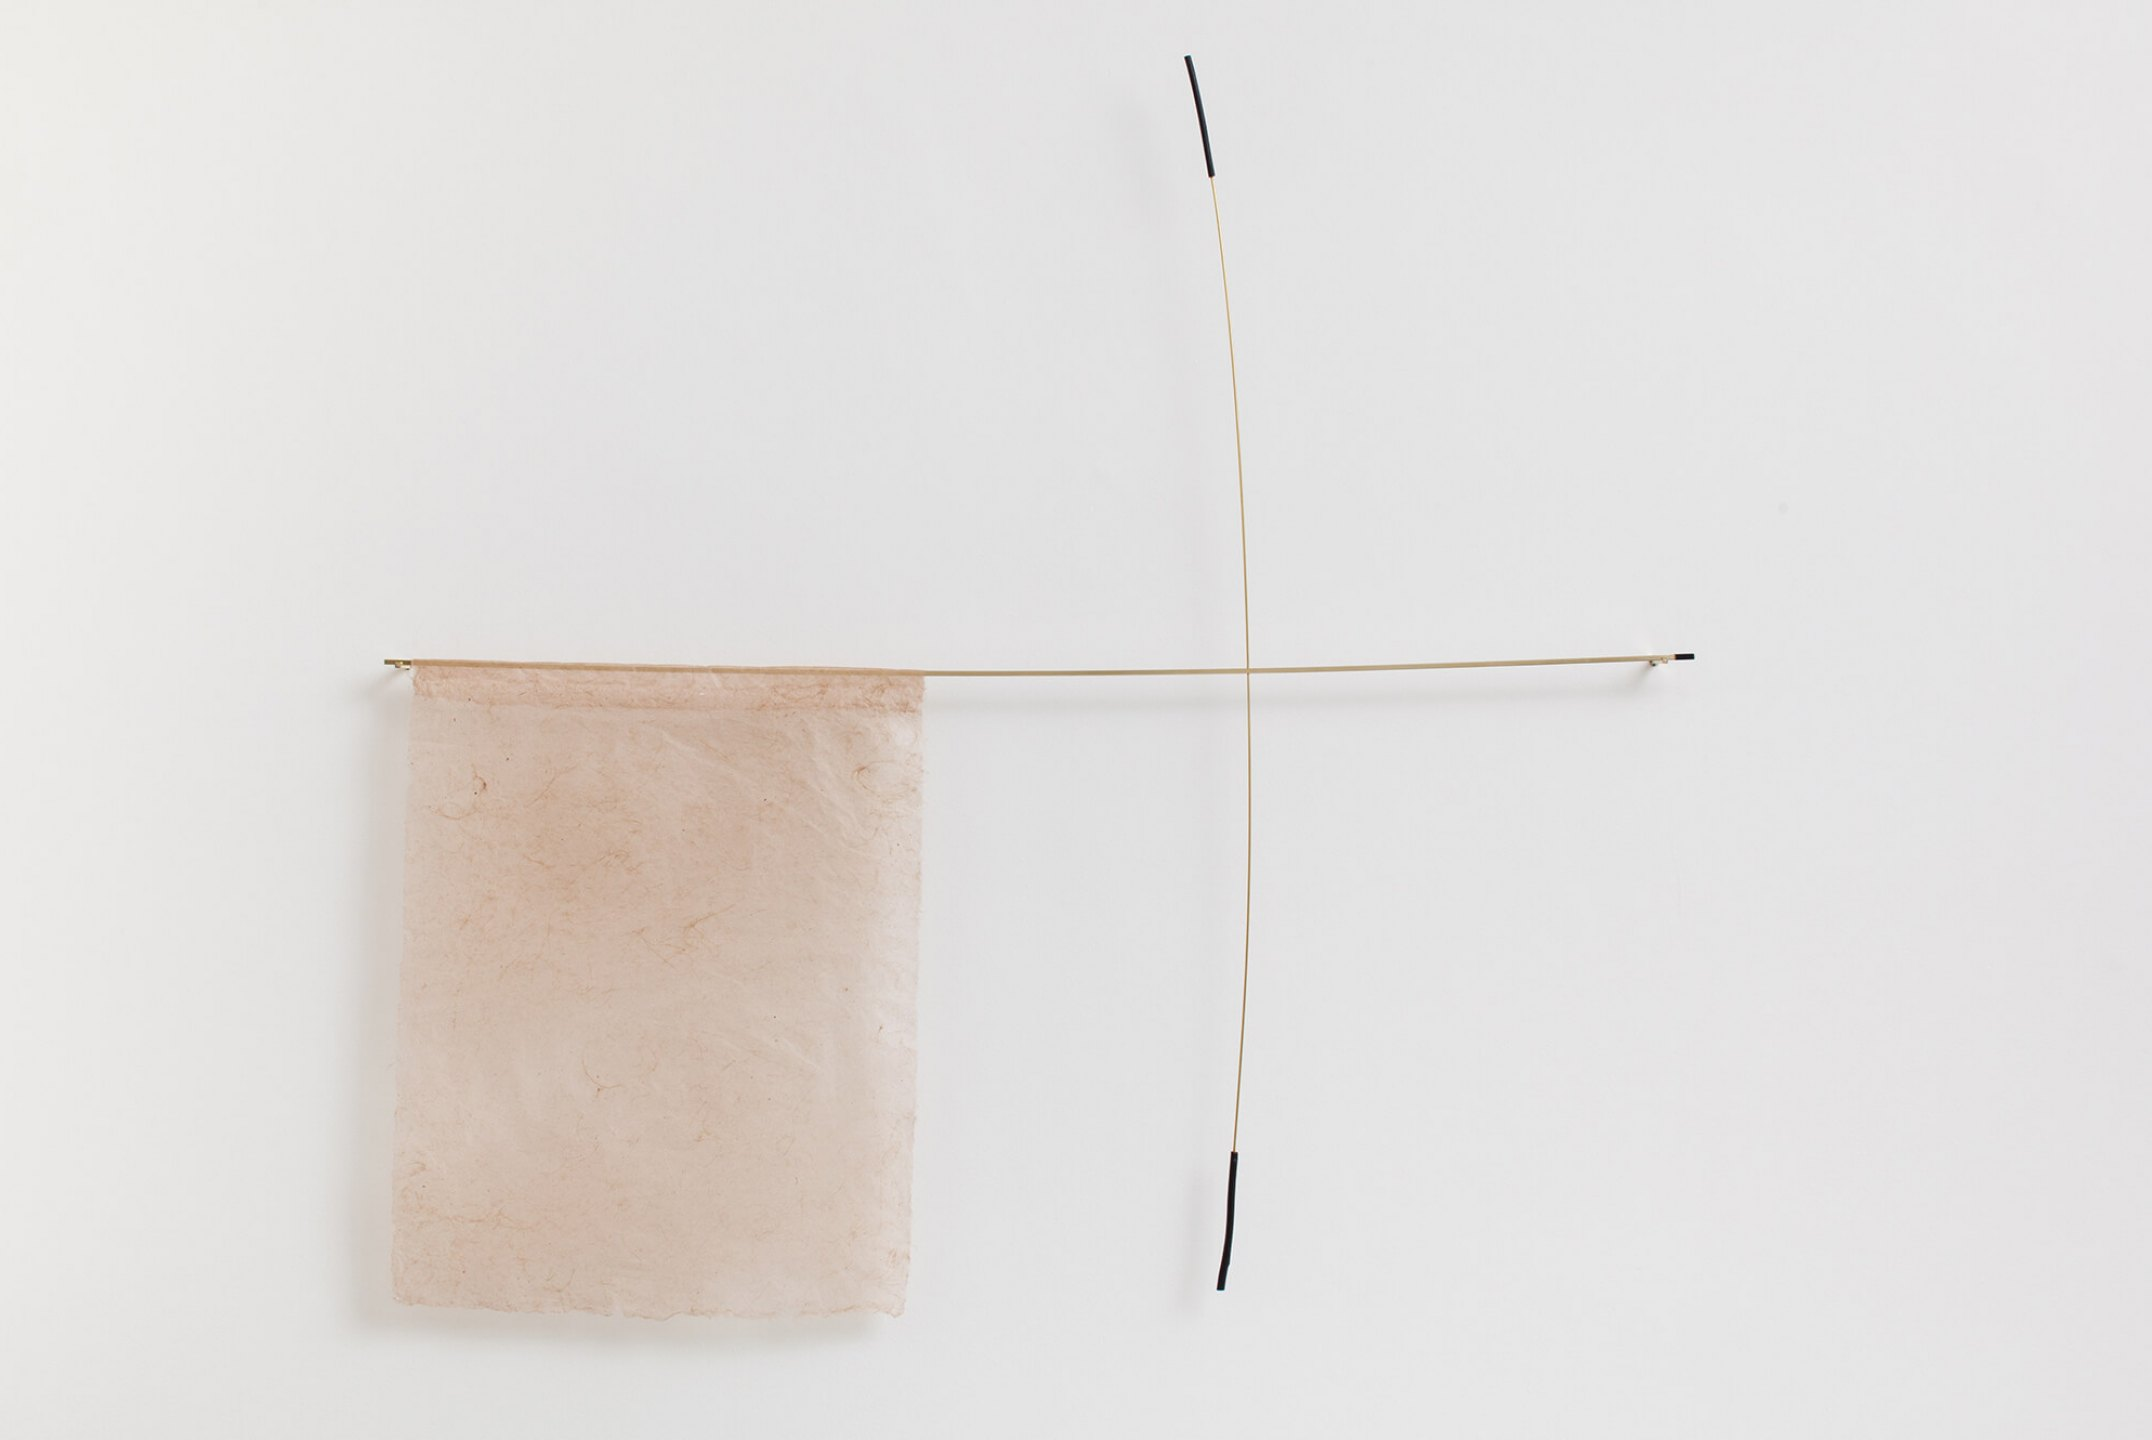 Paloma Bosquê, <em>Possible Composition</em>, 2016, banana leaf paper, brass rods and charcoal, 110 × 118 × 4,5 cm - Mendes Wood DM